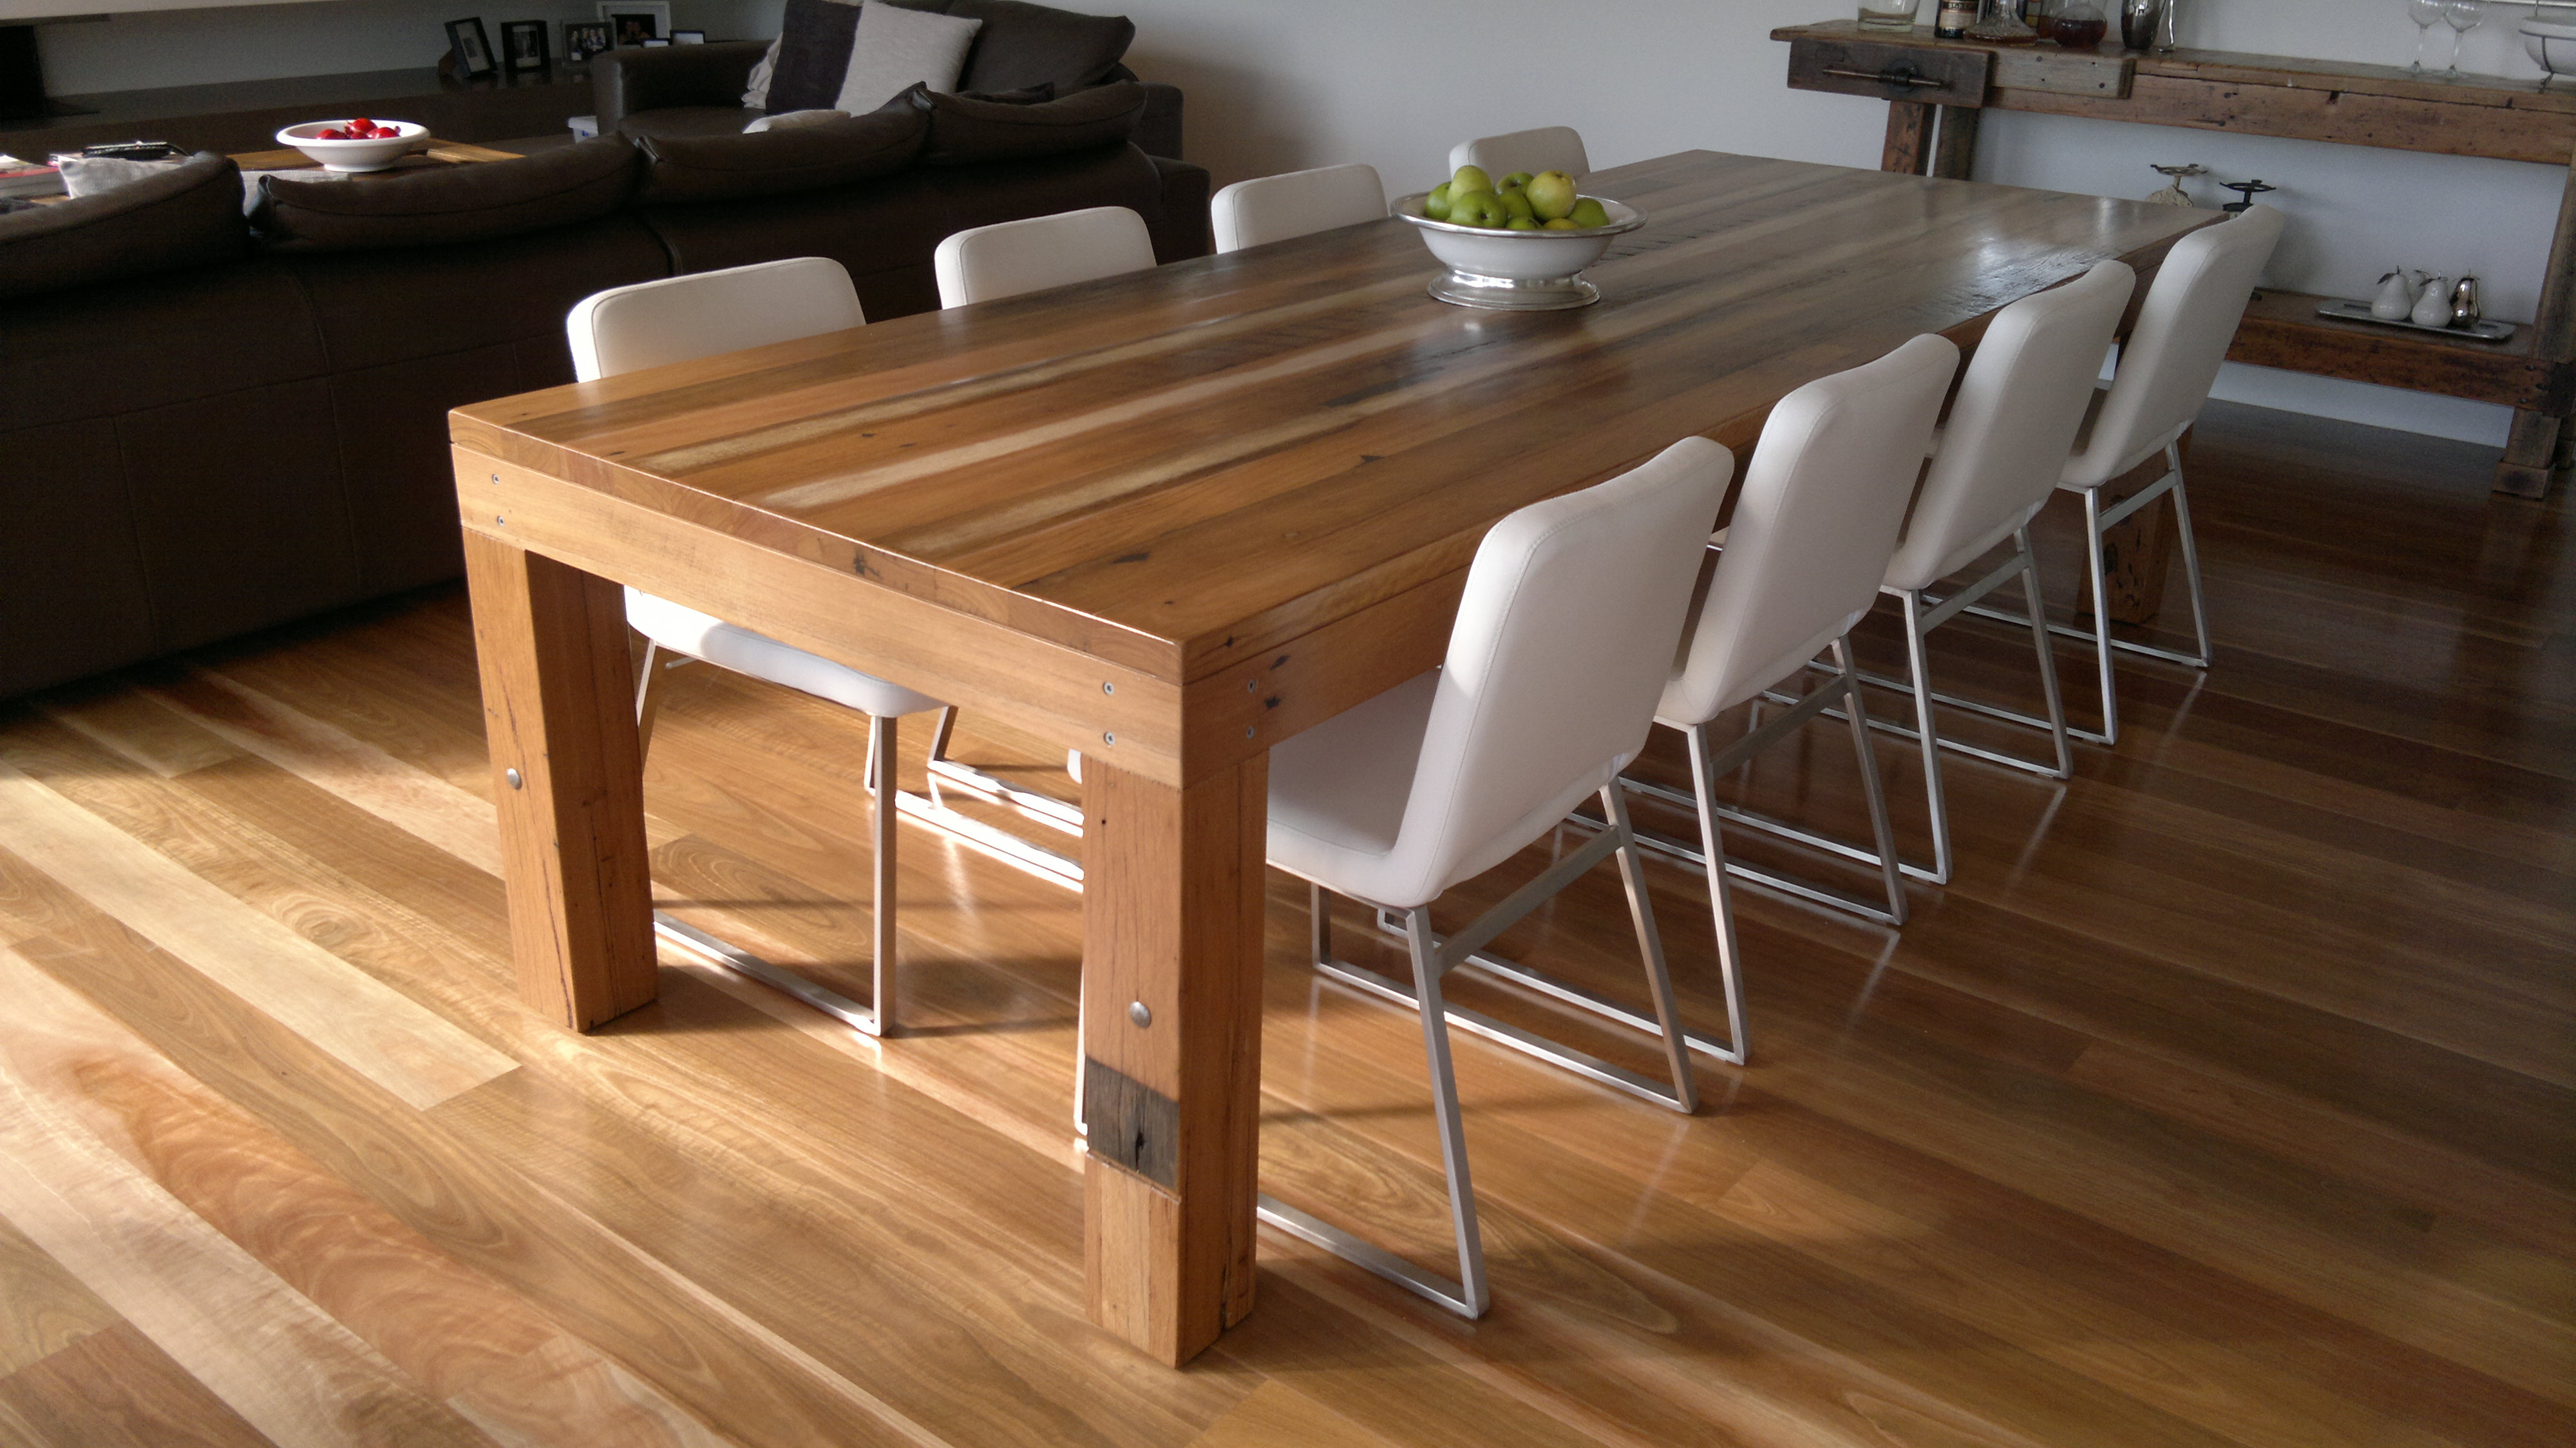 semi industrial dining table mixed hardwoods 2 industrial kitchen table Semi Industrial Dining Table Mixed Hardwoods